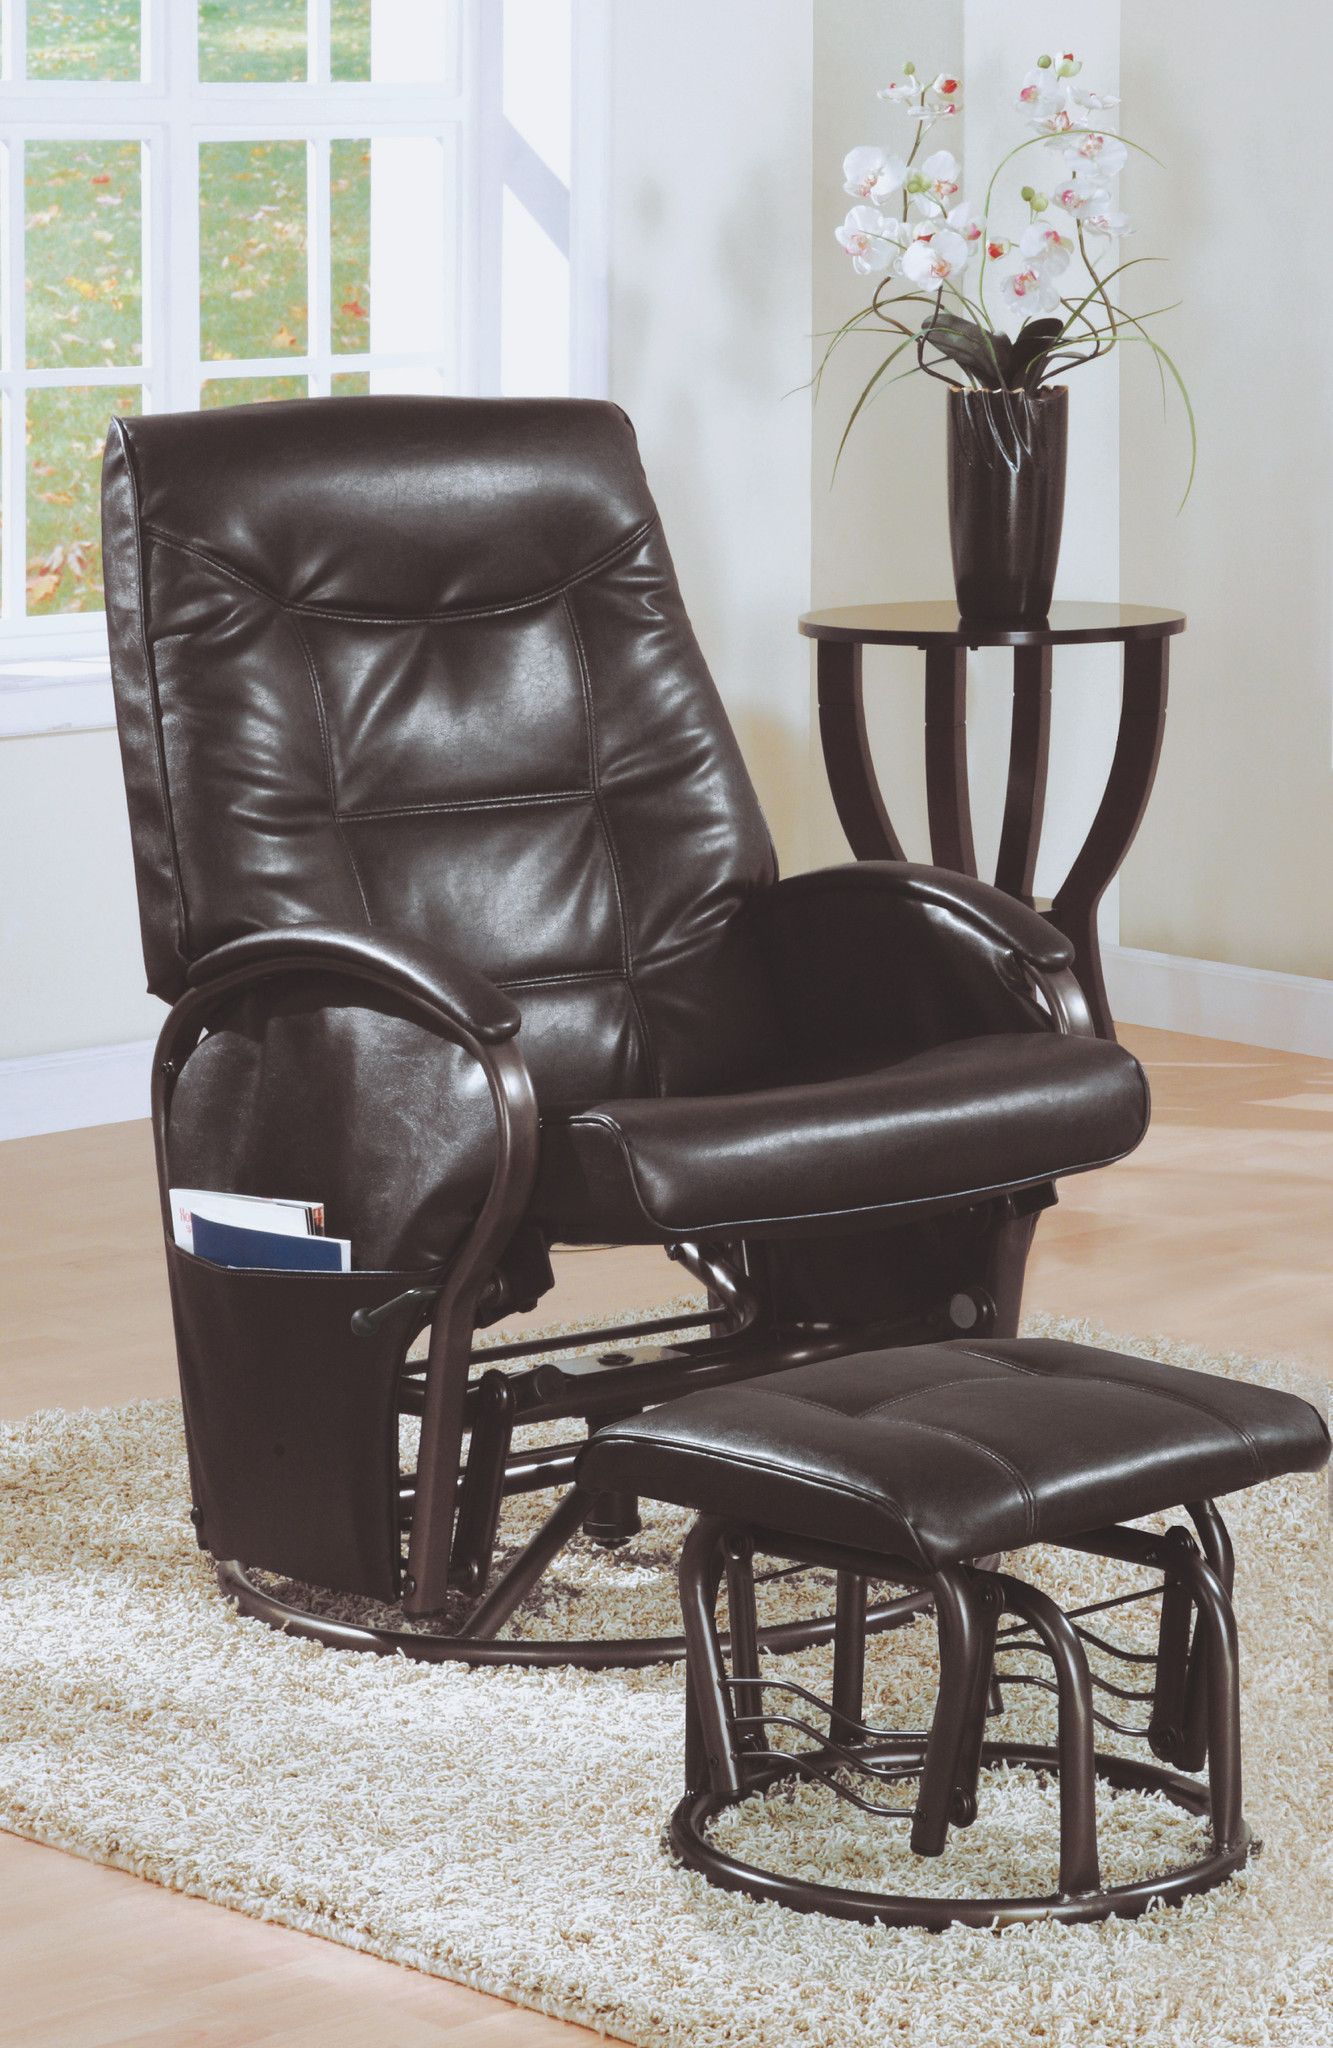 Swivel Rocker Recliner w Ottoman (Brown) Recliner with